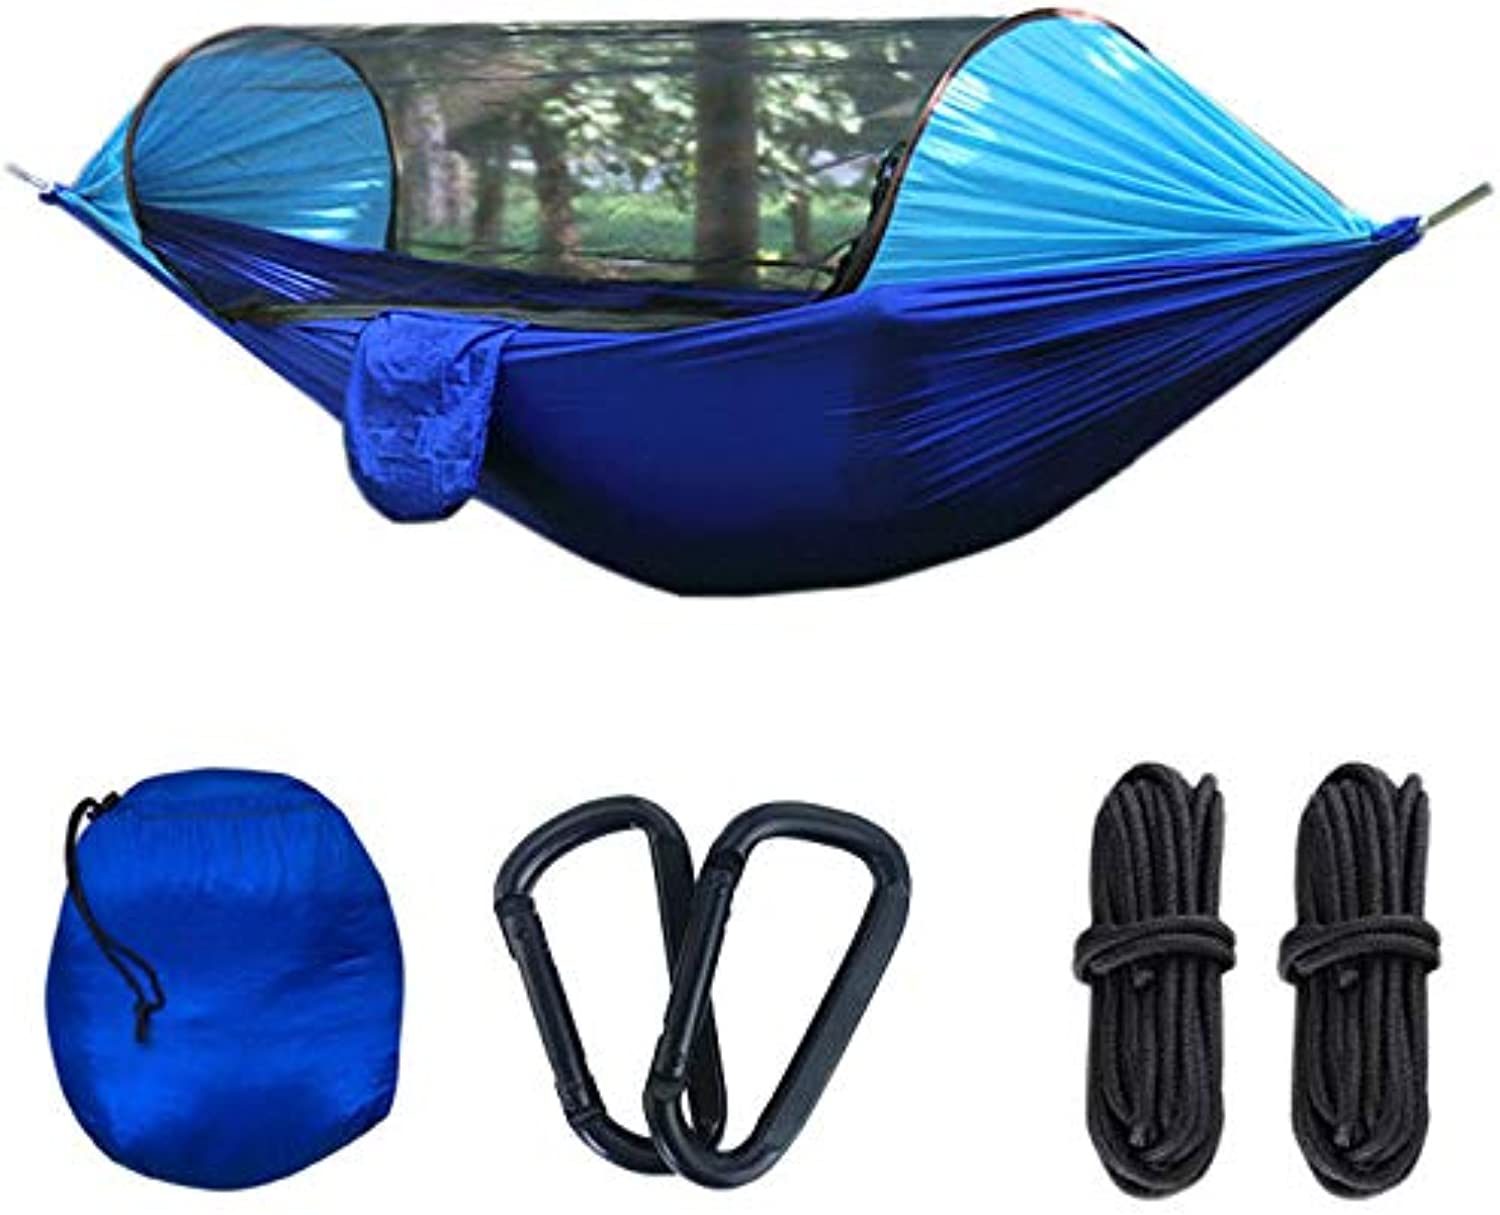 Camping Hammock with Mosquito Net, Tree Straps and Carabiners, Portable Parachute Nylon Hammock with But Net, for Outdoor Backpacking Trip, Hiking and Traveling